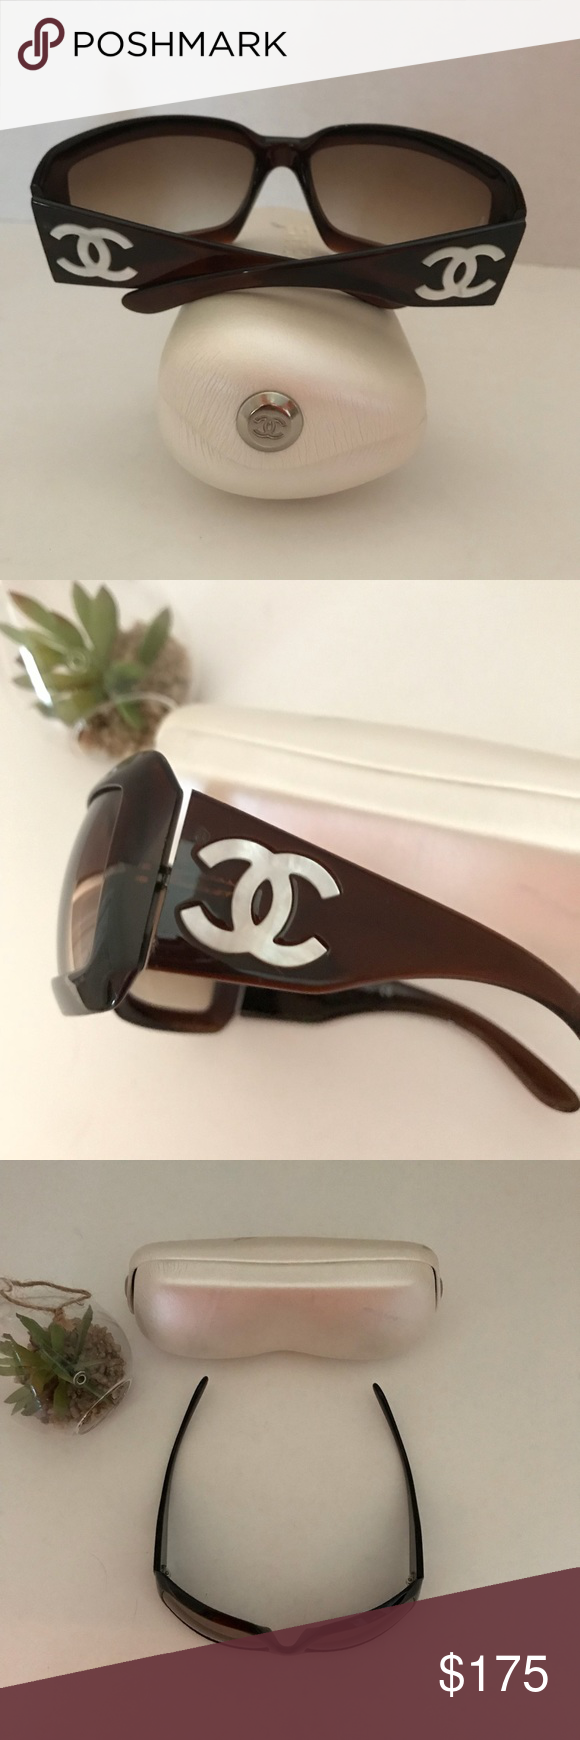 d70e4b39e99 ... this listing on Poshmark  ✳ 💯 Chanel Mother of Pearl Sunglasses.   shopmycloset  poshmark  fashion  shopping  style  forsale  CHANEL   Accessories